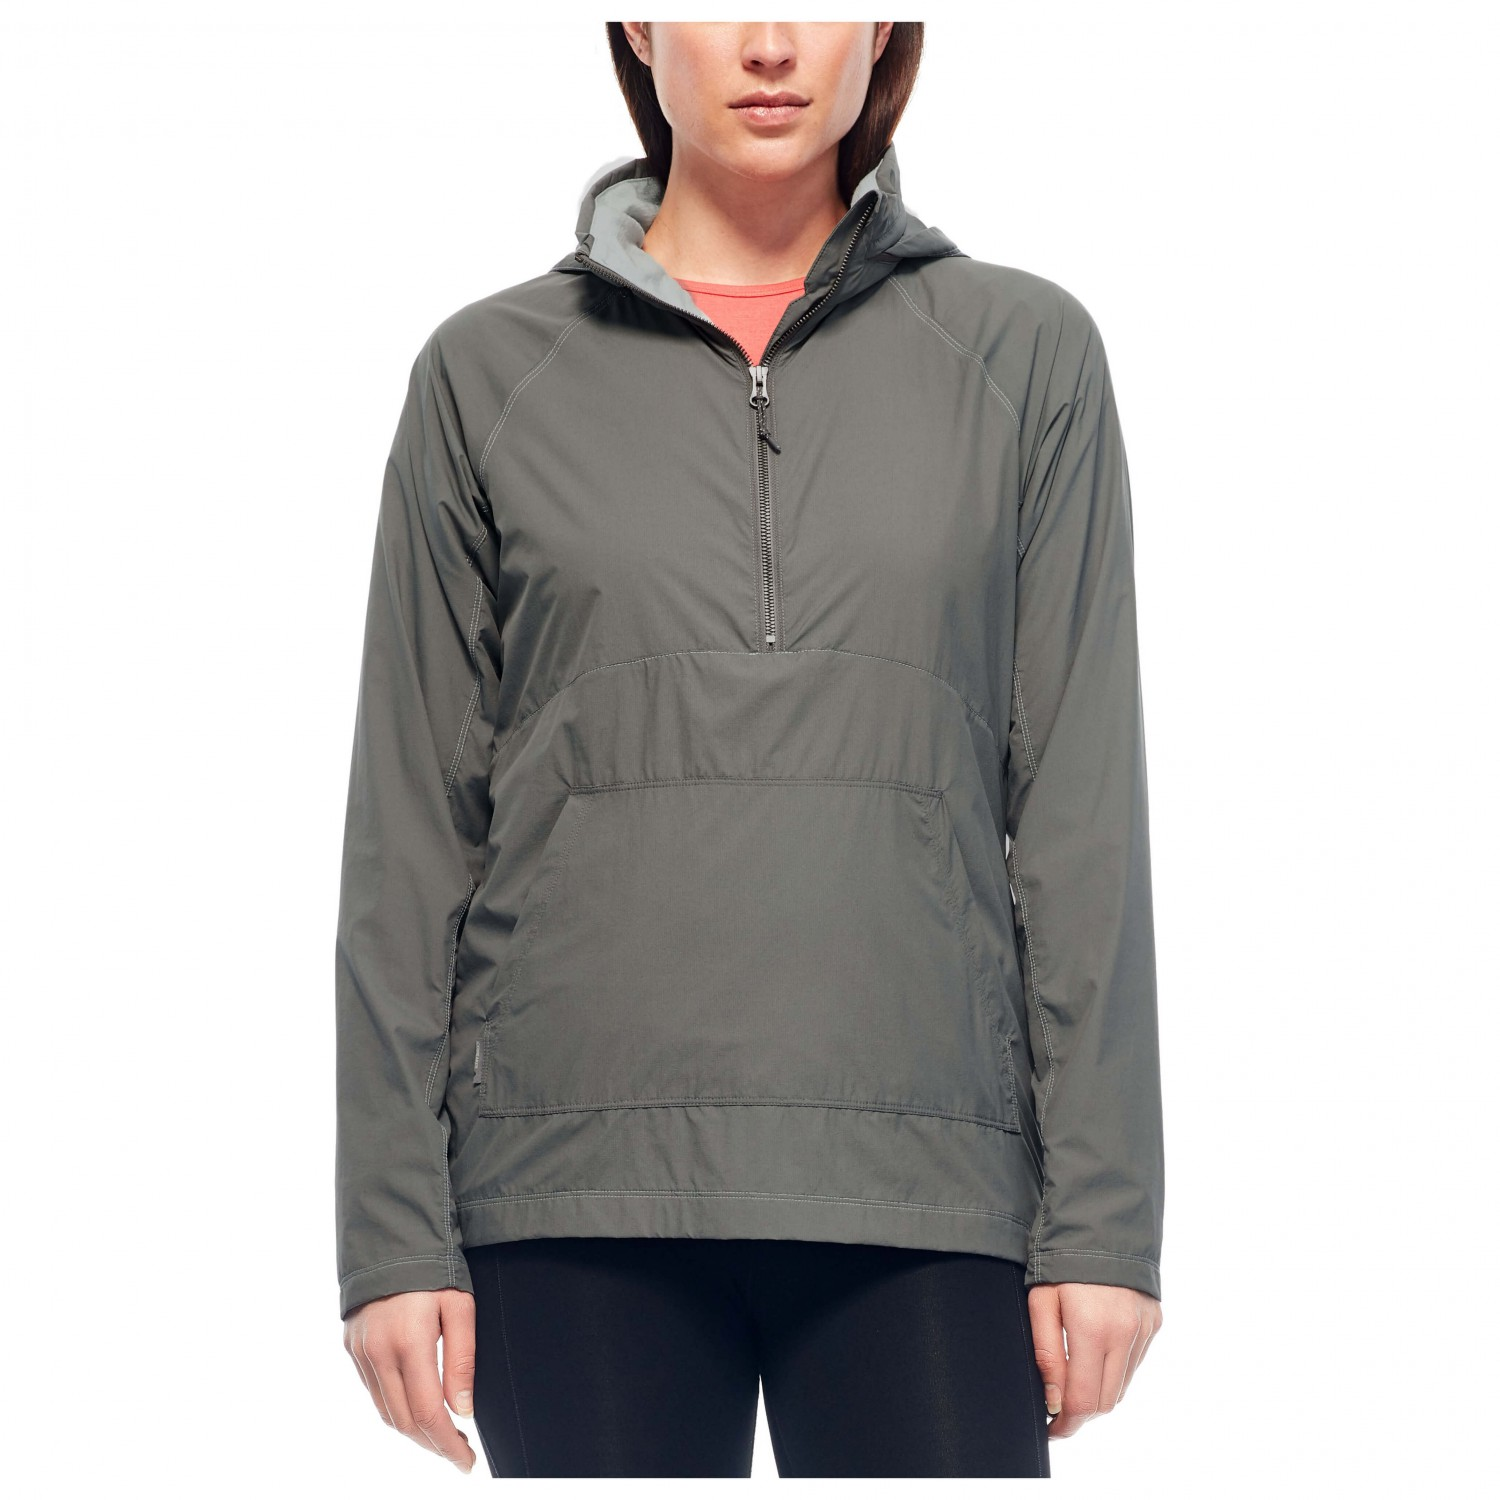 Icebreaker Affix Anorak Casual Jacket Women S Free Uk